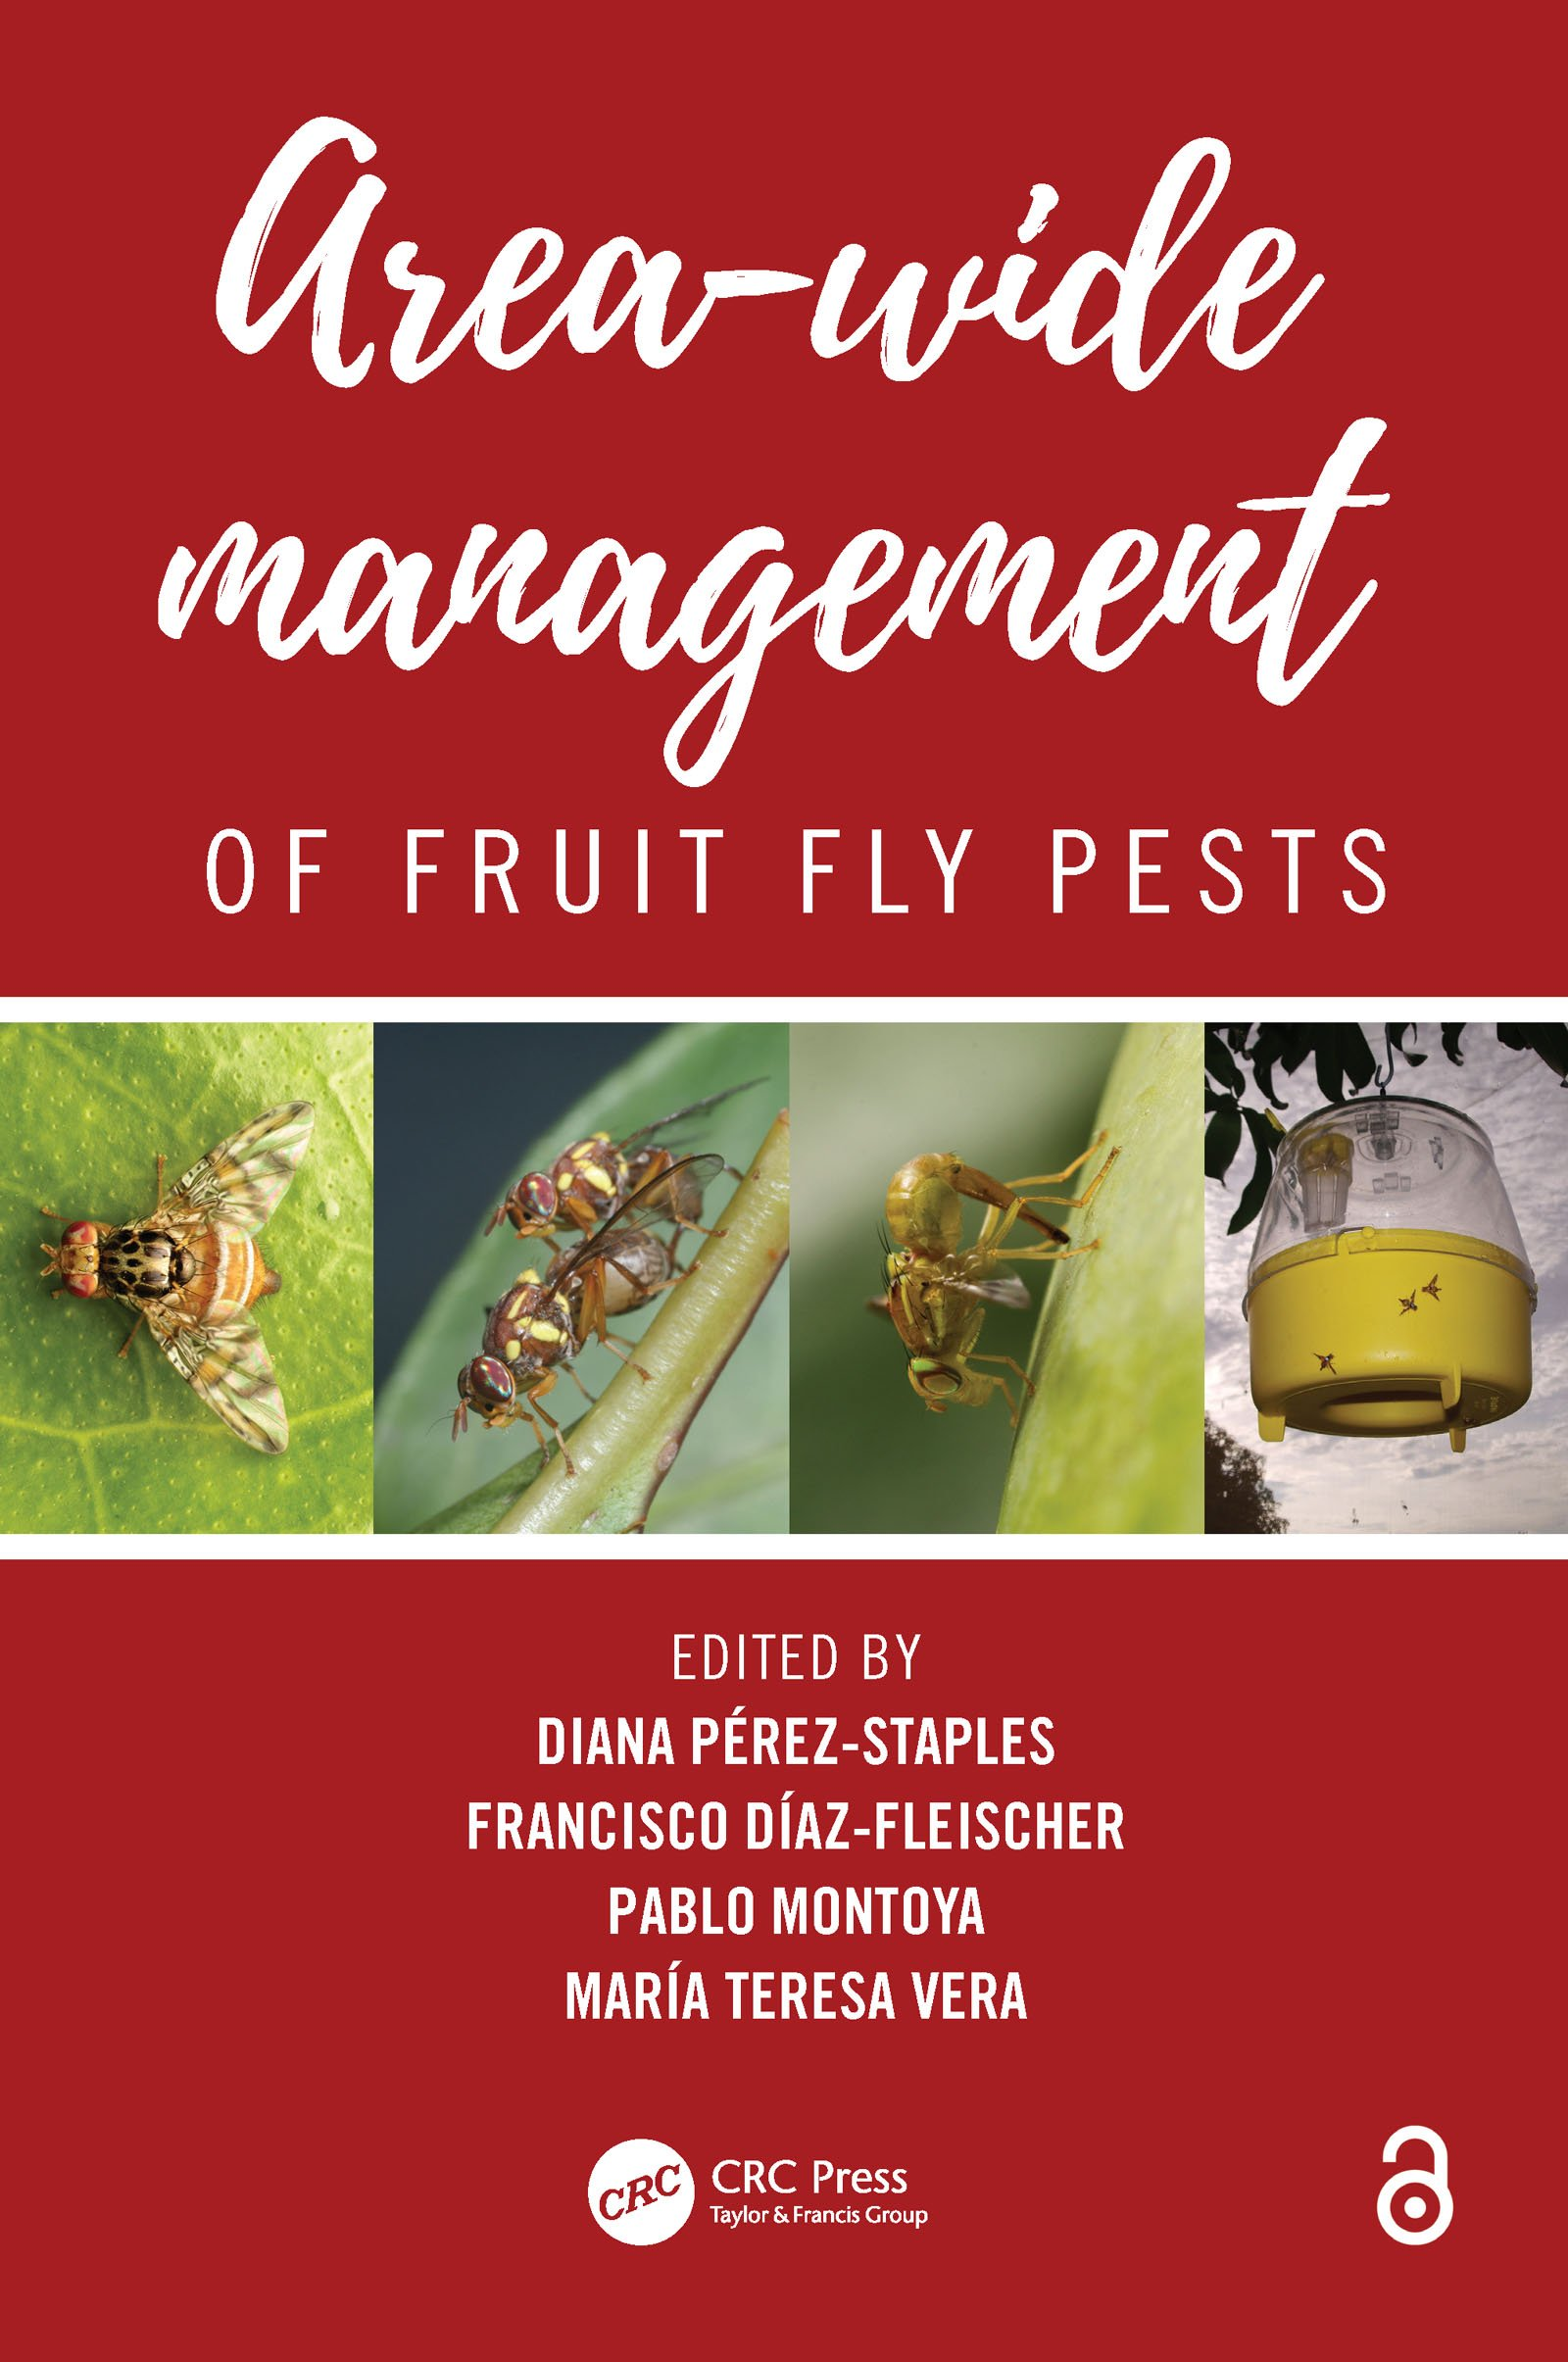 Area-Wide Management of Fruit Fly Pests